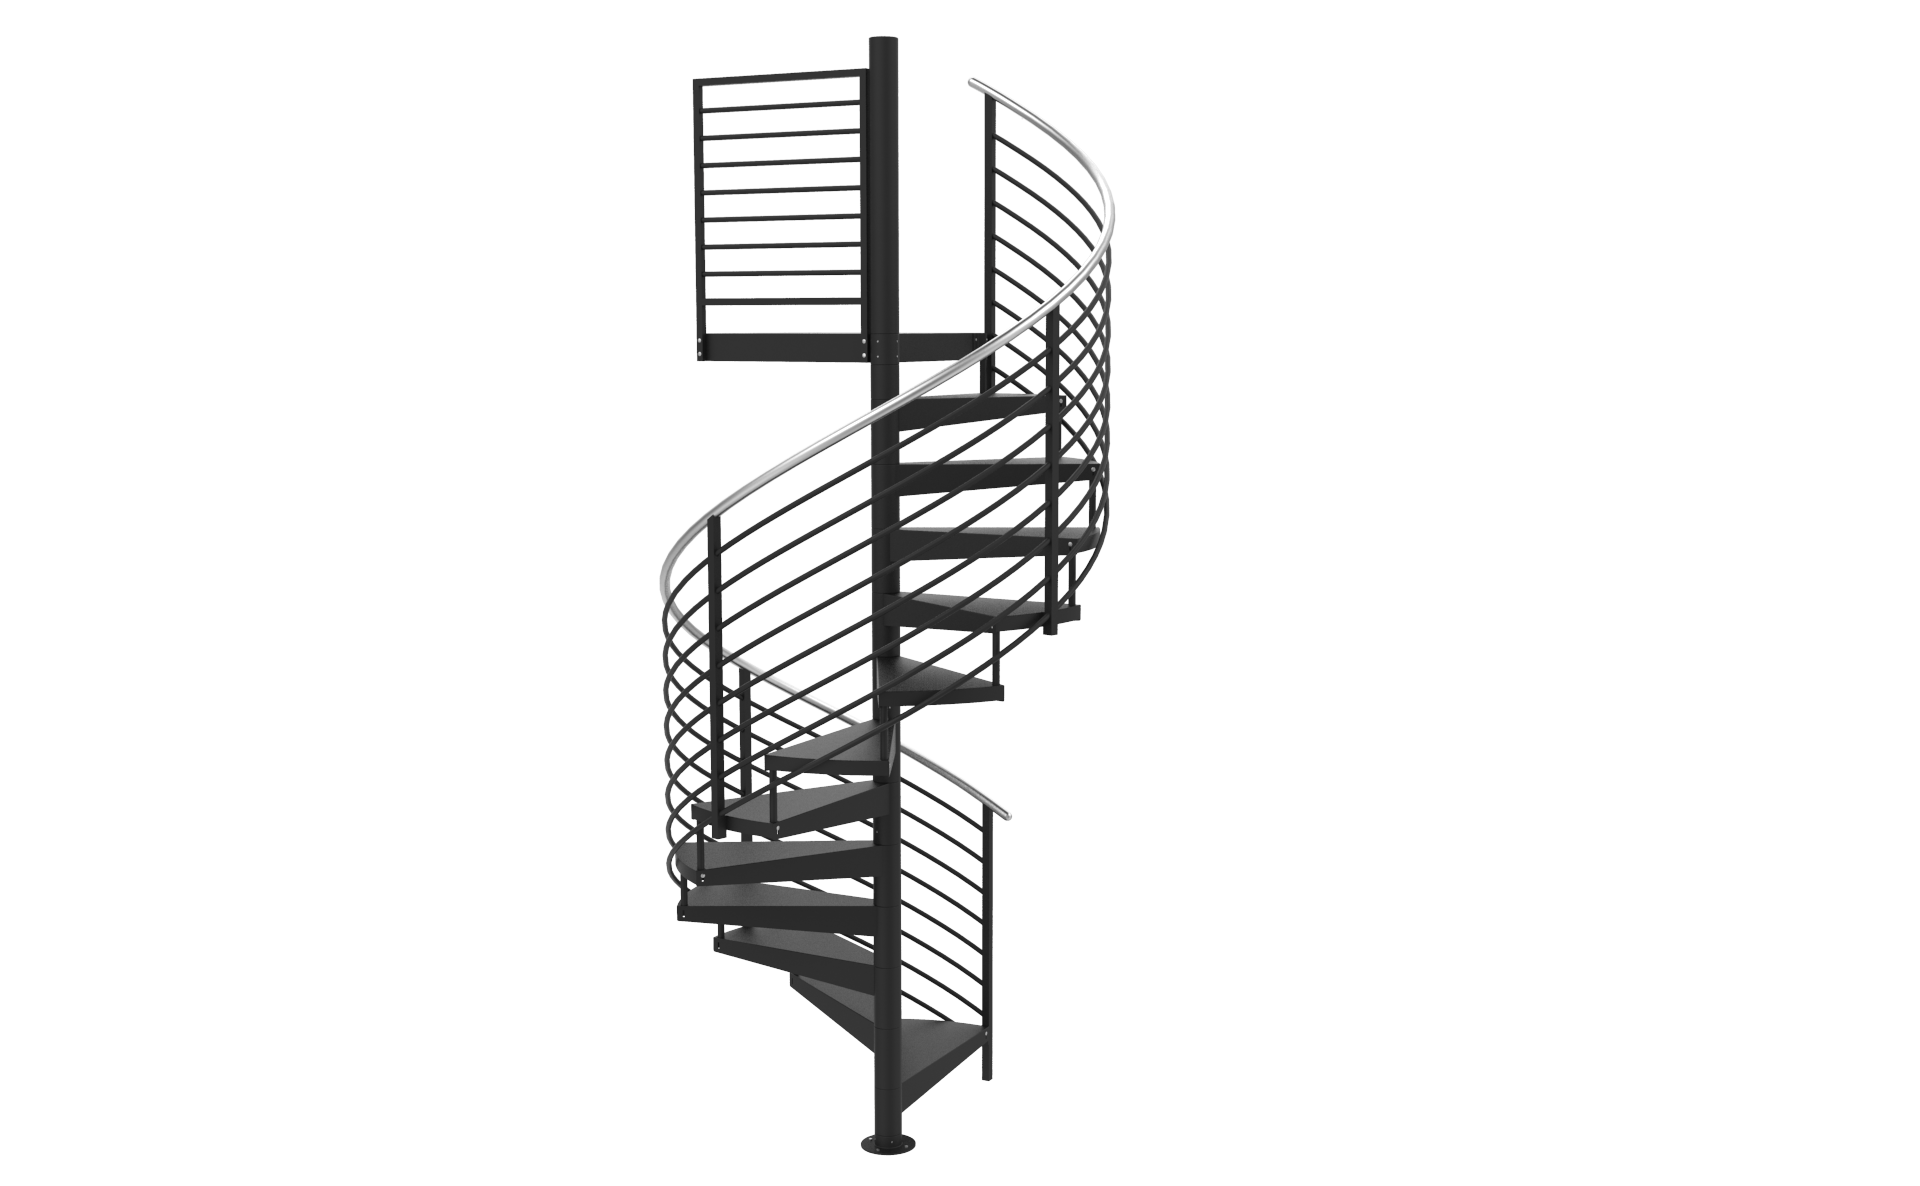 Spiral staircase png. D horizontal welded